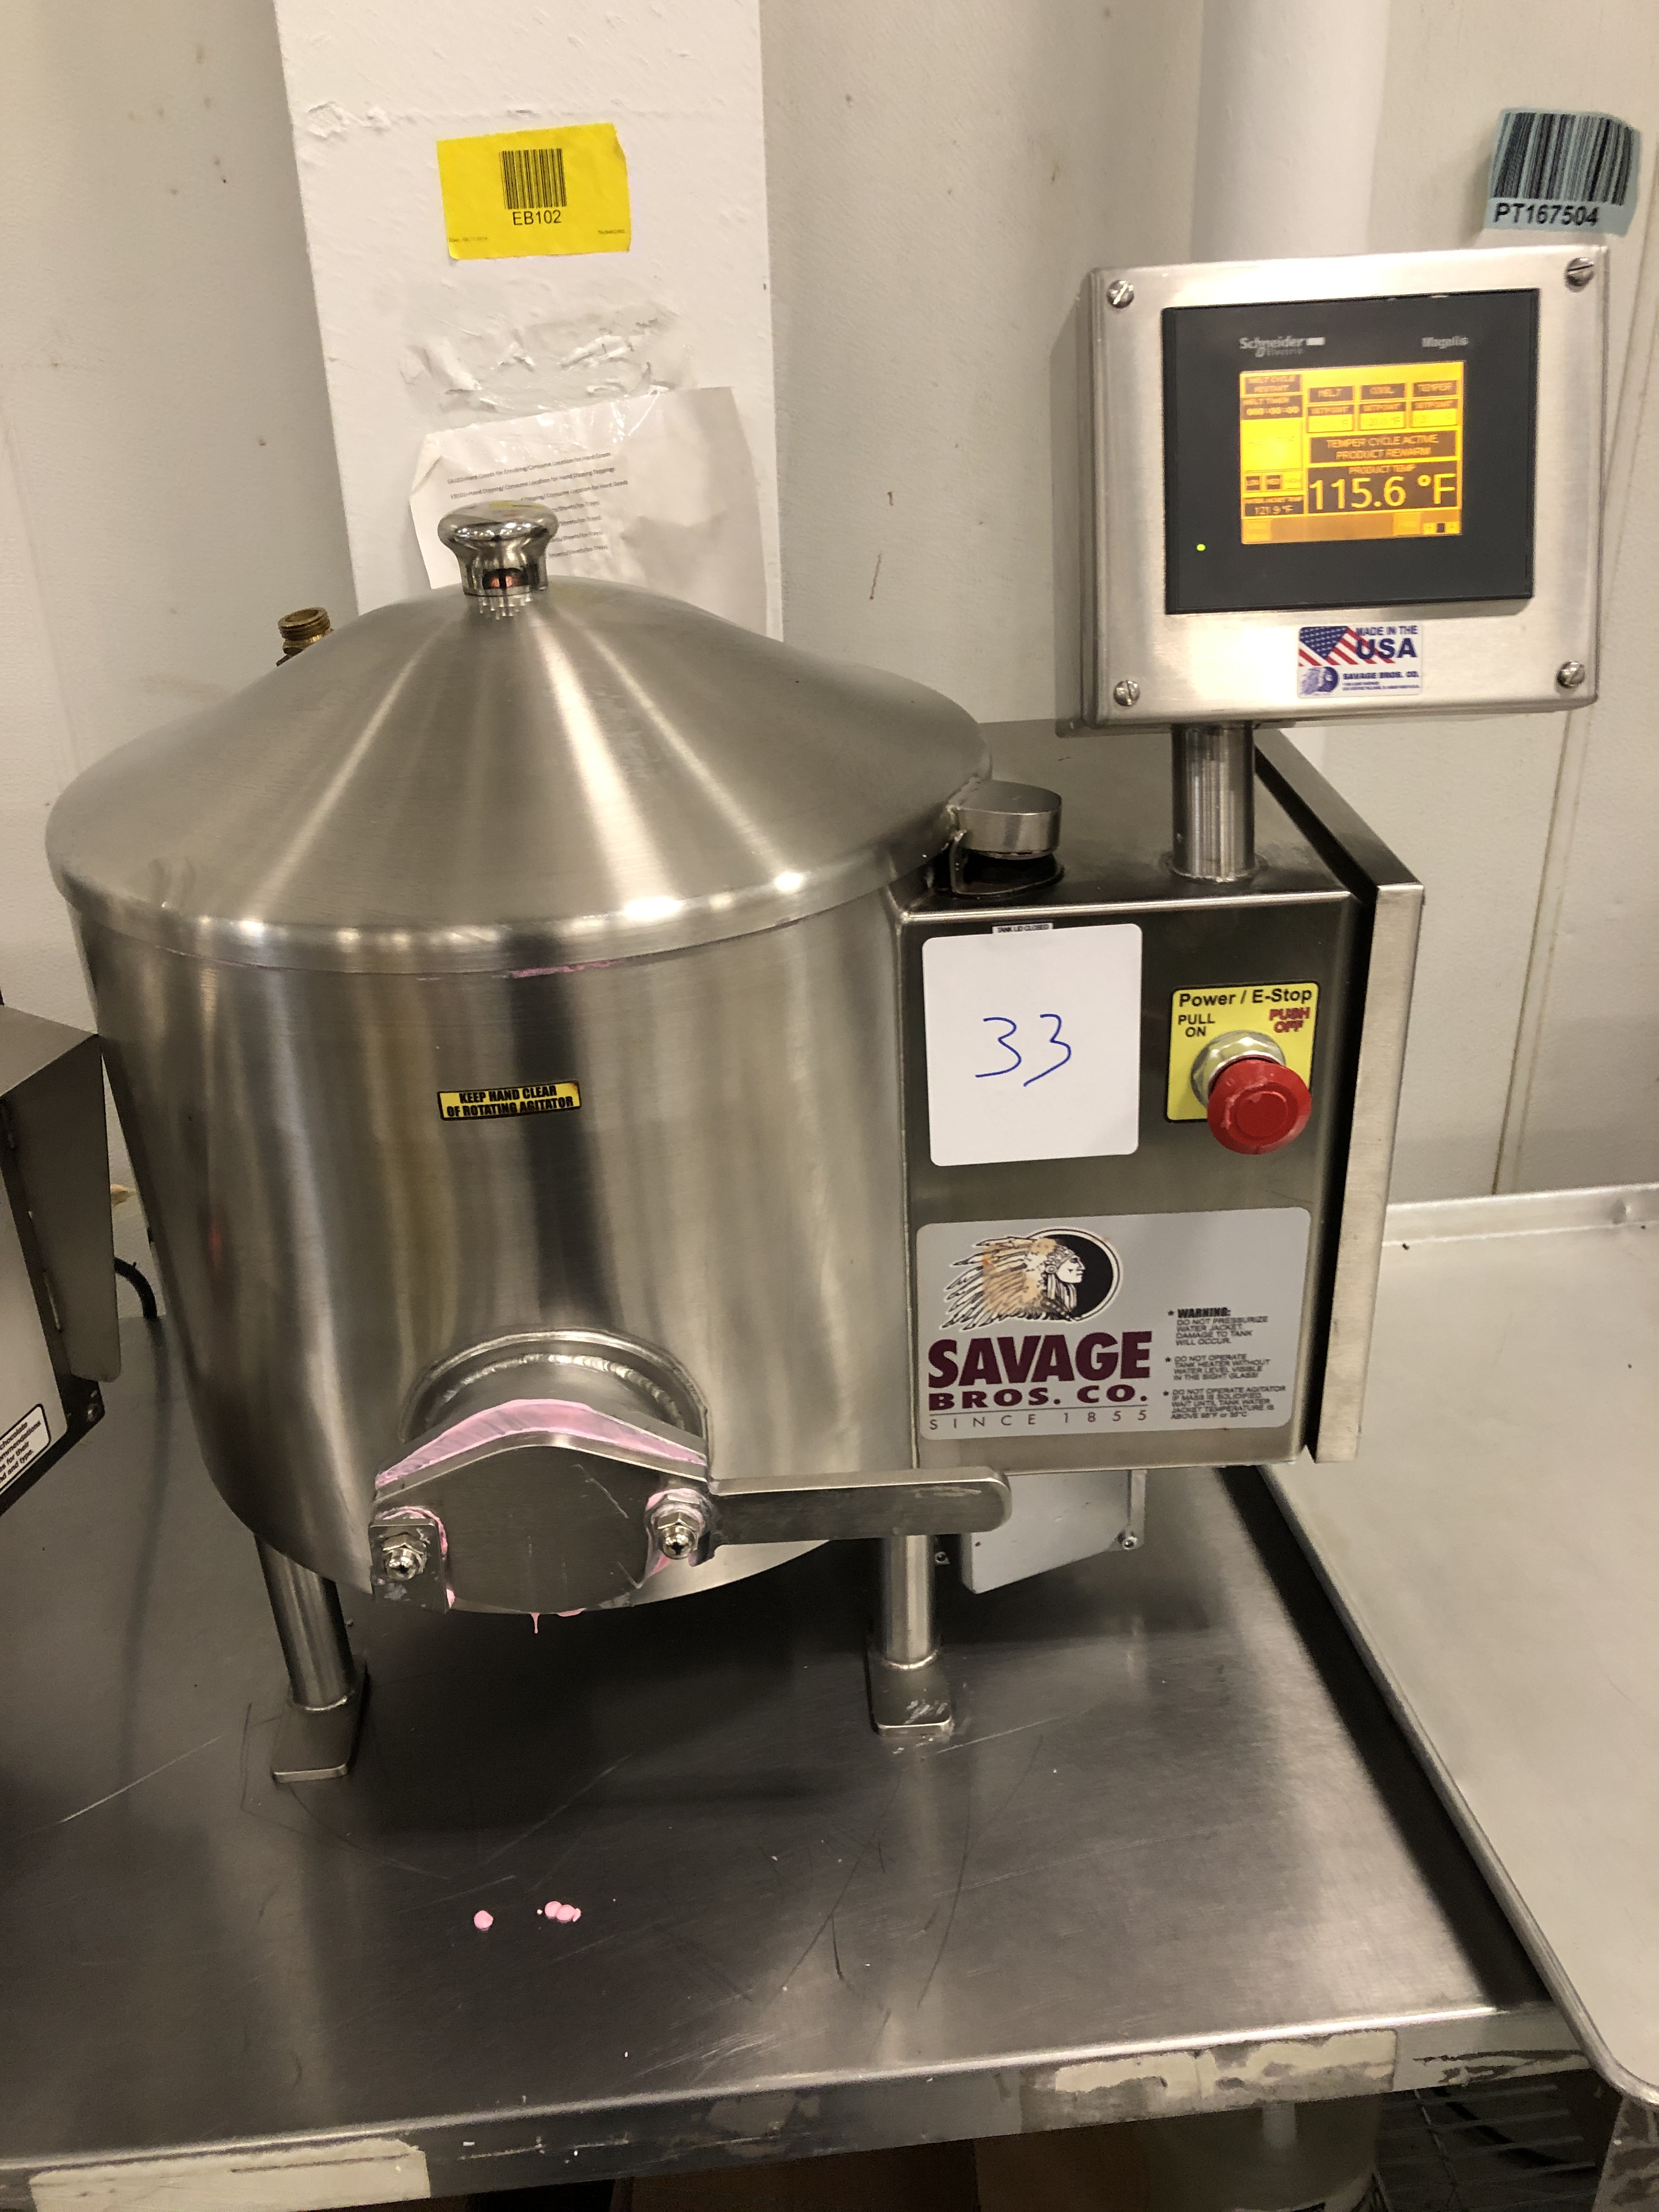 Lot 29 - Savage 50-lb Stainless Steel Auto Tempering Chocolate Melter, model 0934-60